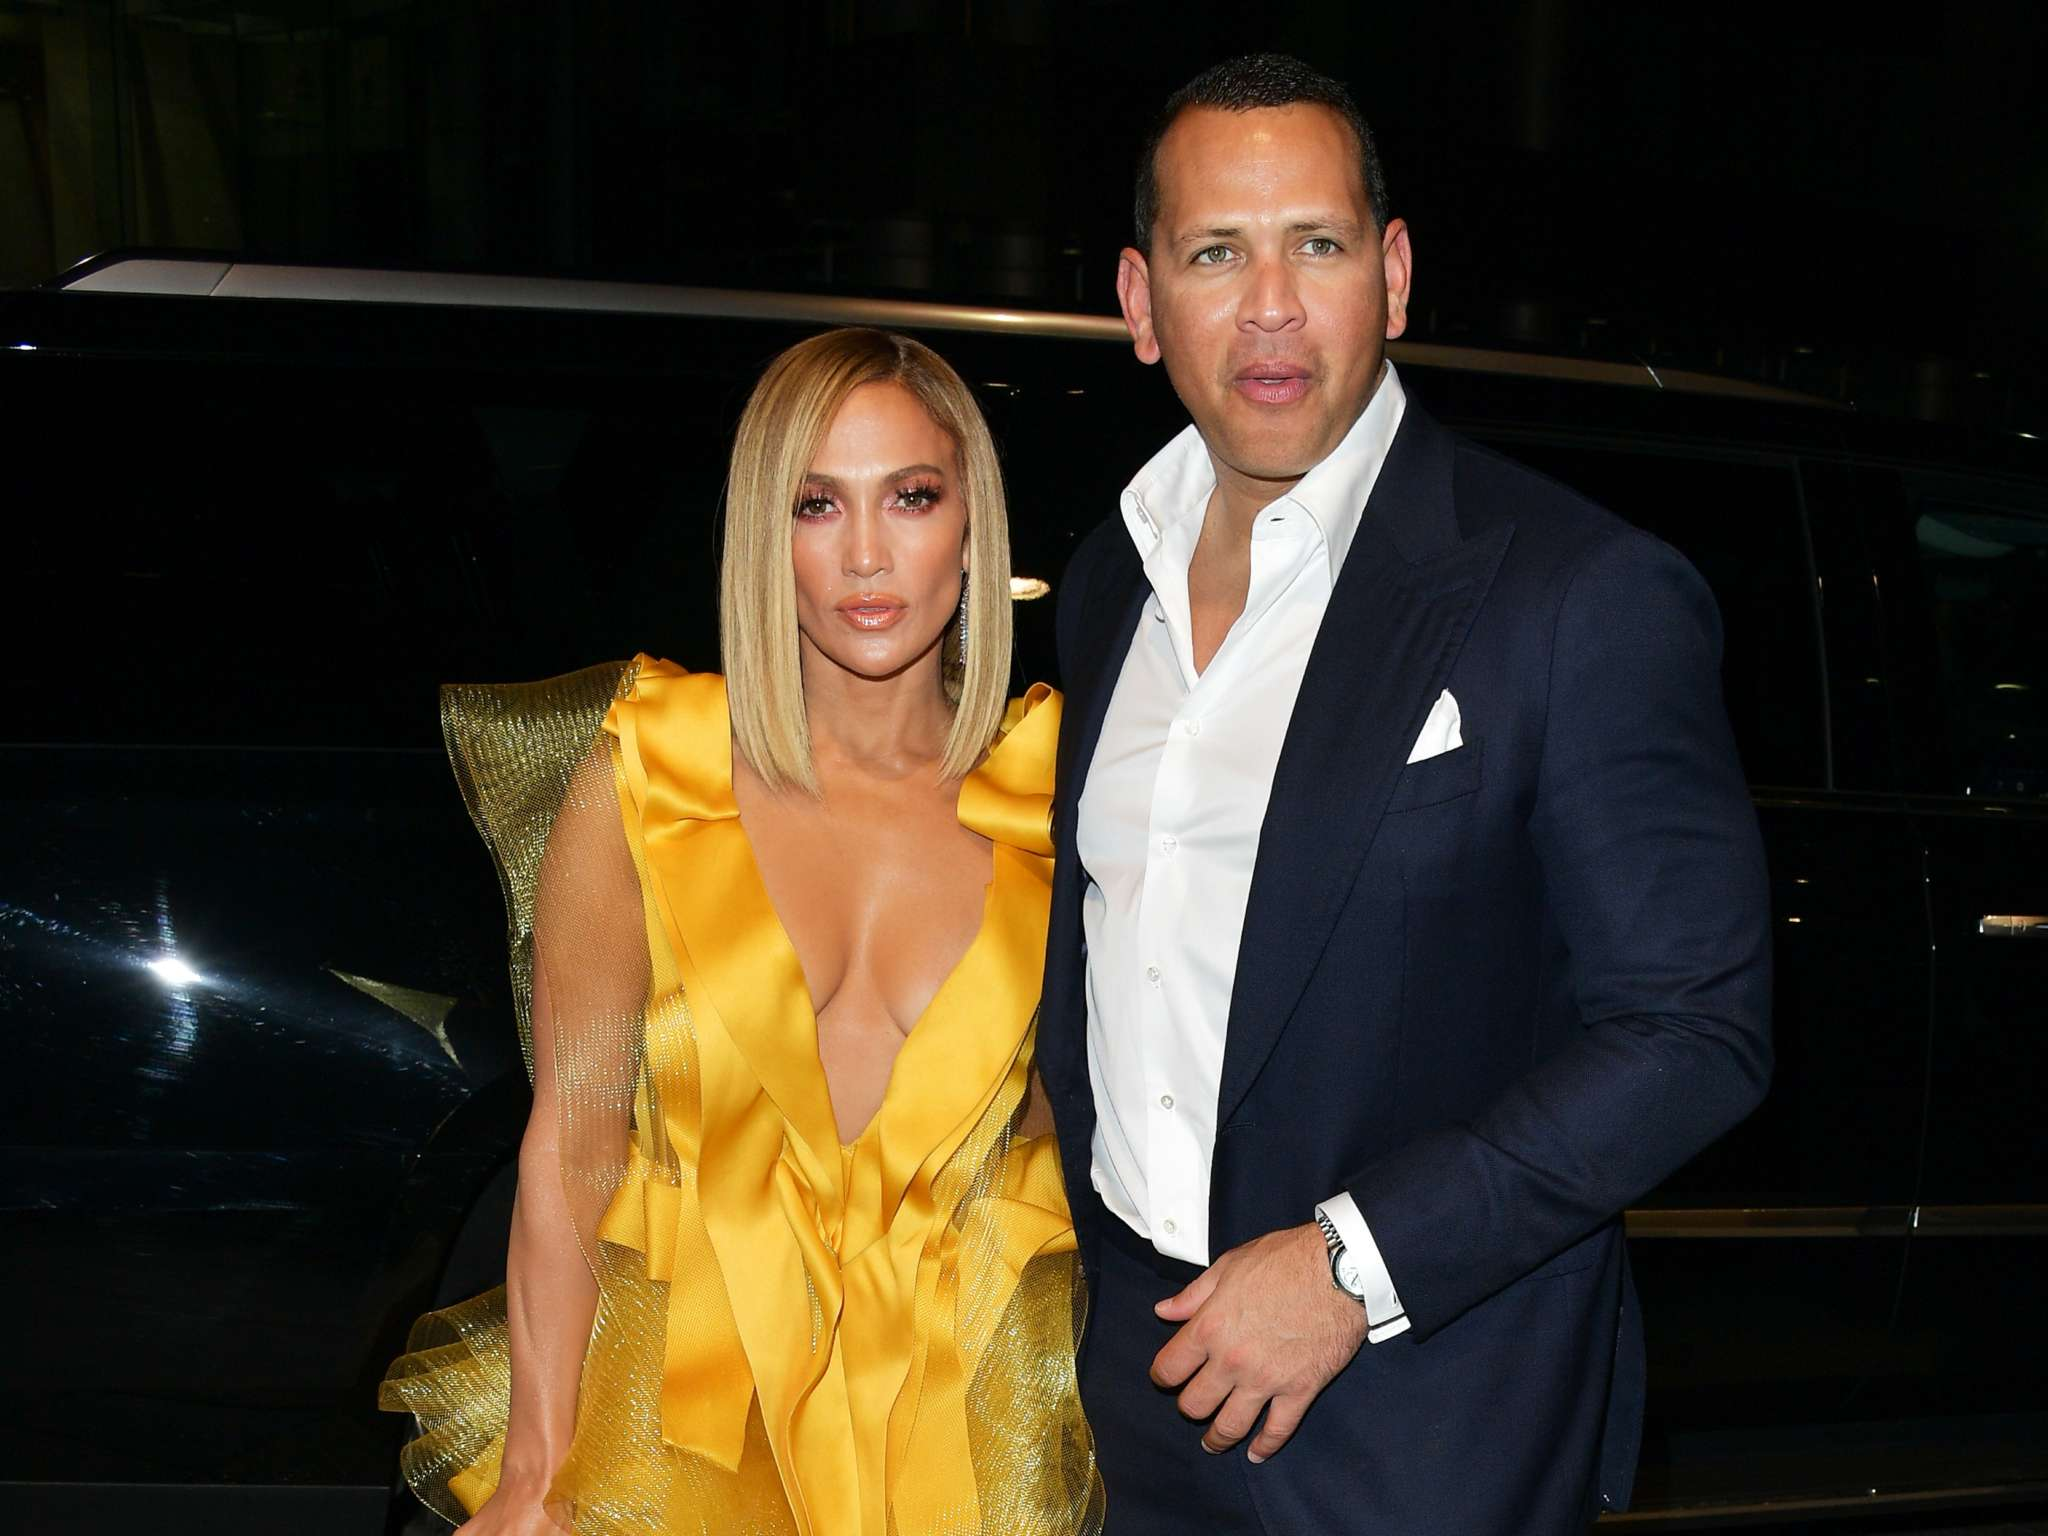 Jennifer Lopez And Alex Rodriguez Are Repotedly Planning To Buy The NY Mets